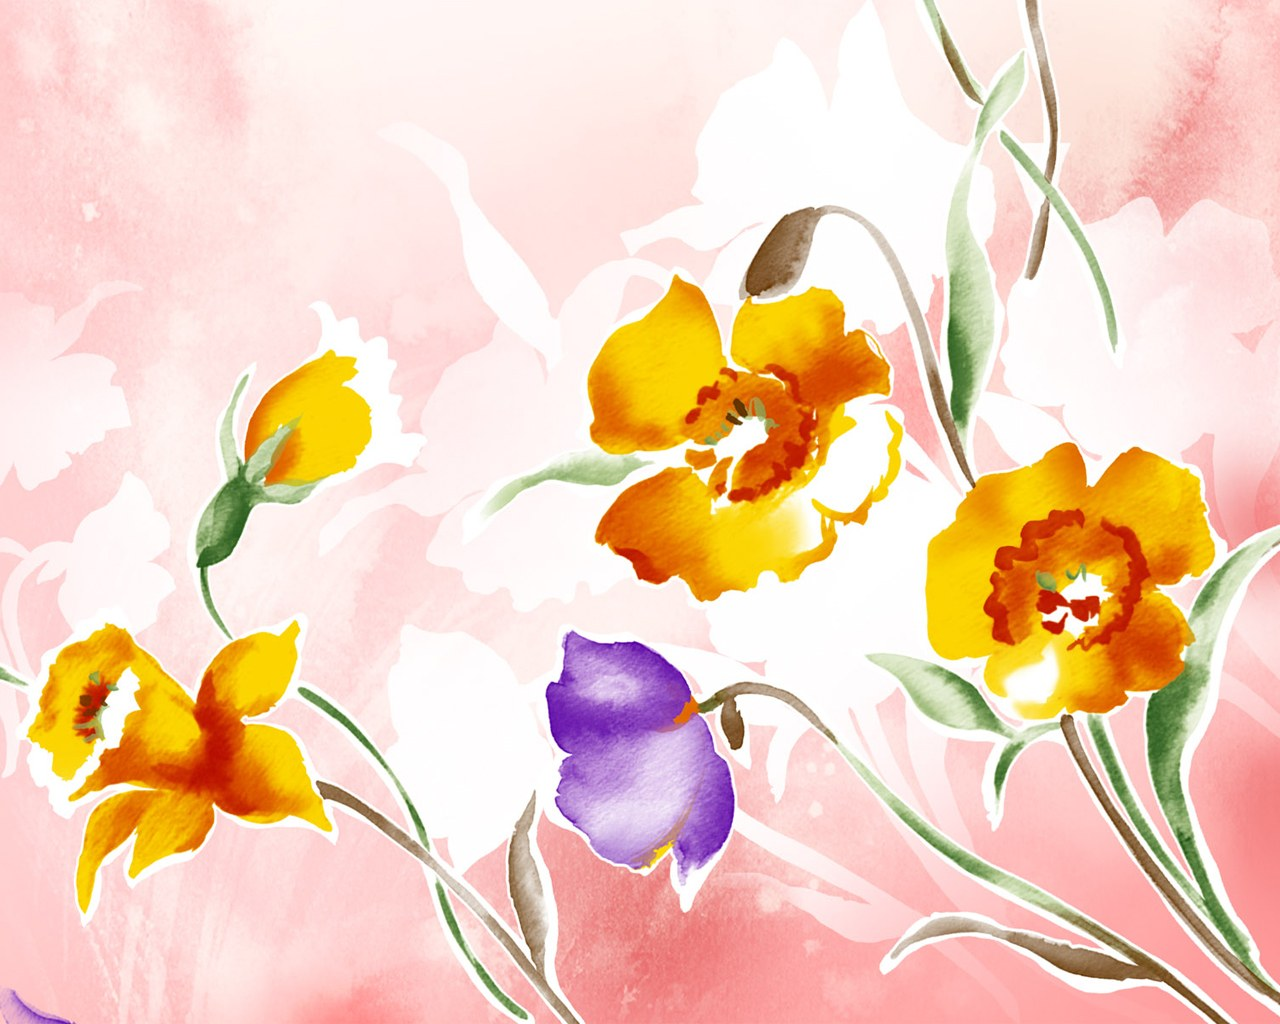 Illustration floral pattern flower design 1280 1024 wallpaper 23